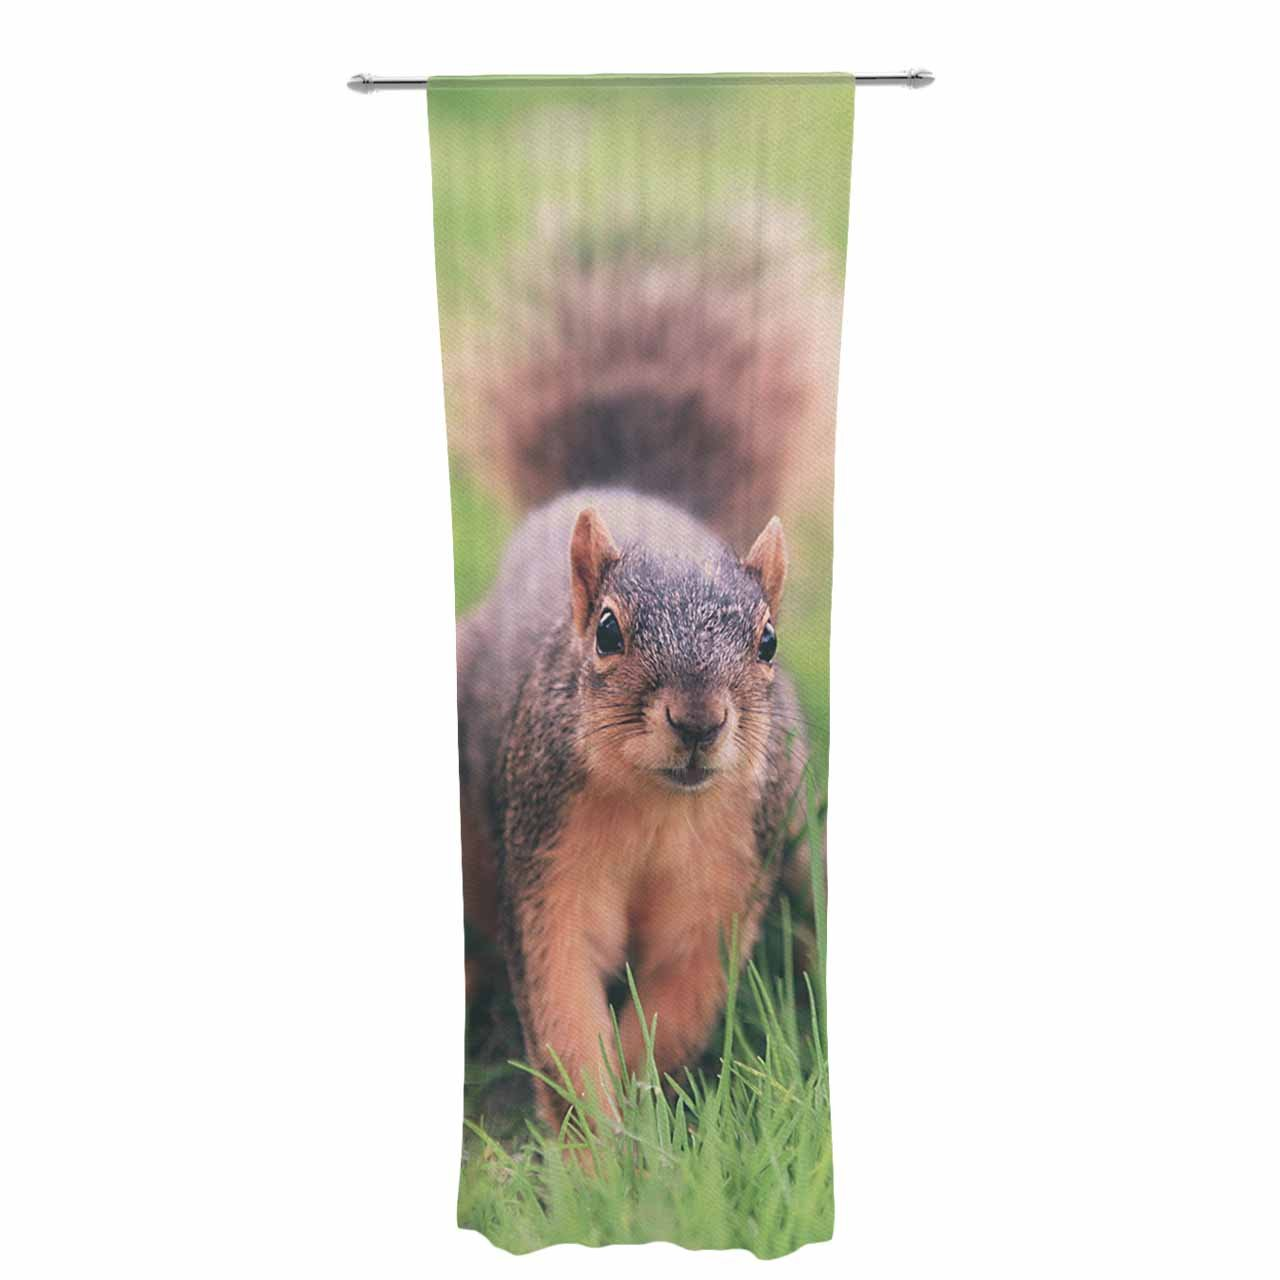 Kess InHouse Angie Turner Squirrel Brown Animals Decorative Set, 30' x 84' Sheer Curtains